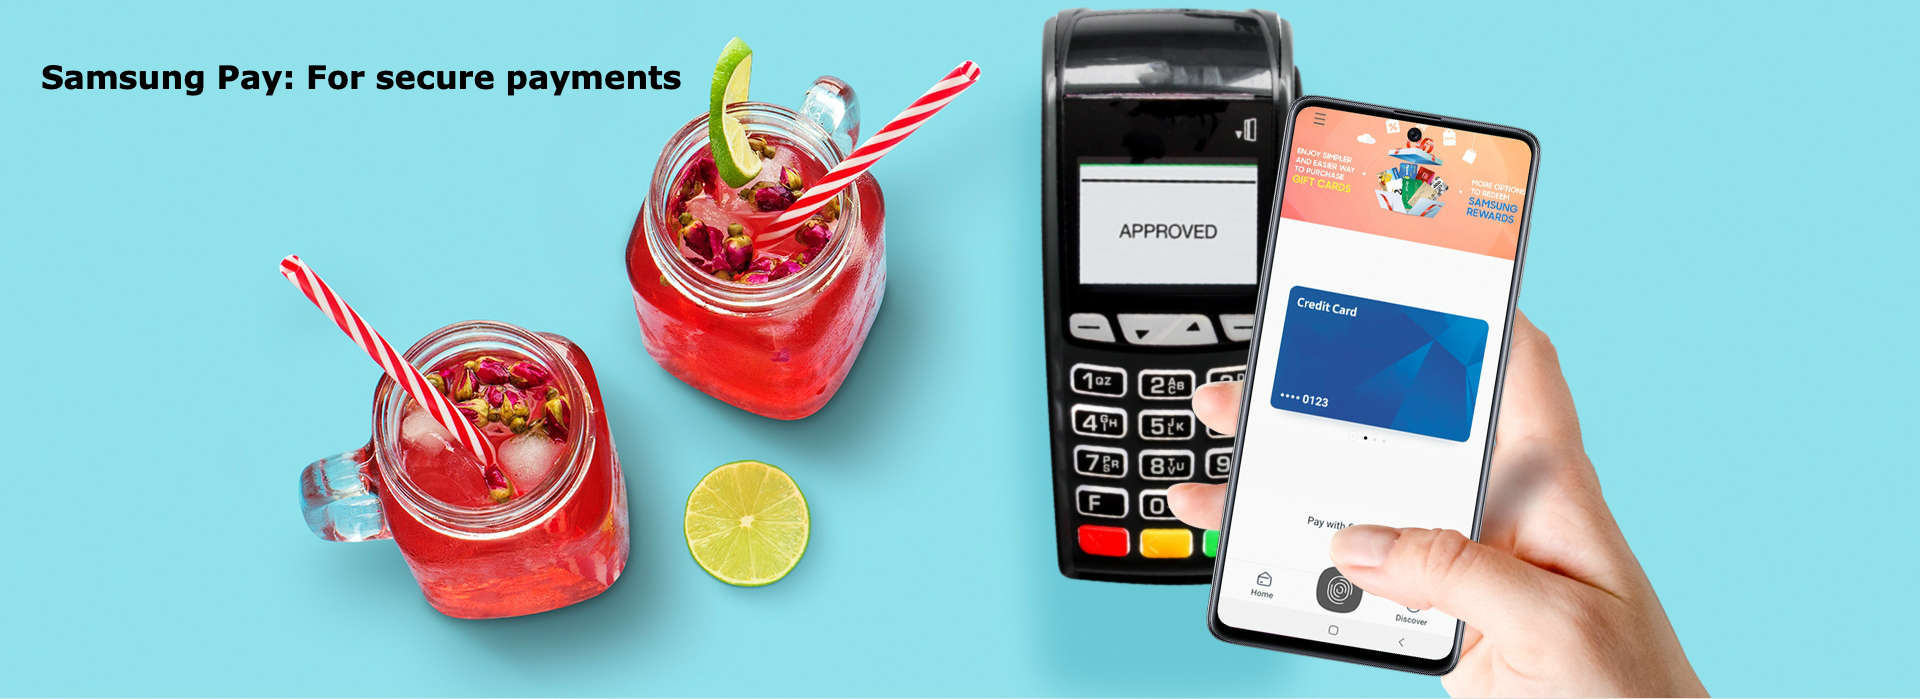 samsung-pay-with-text-1